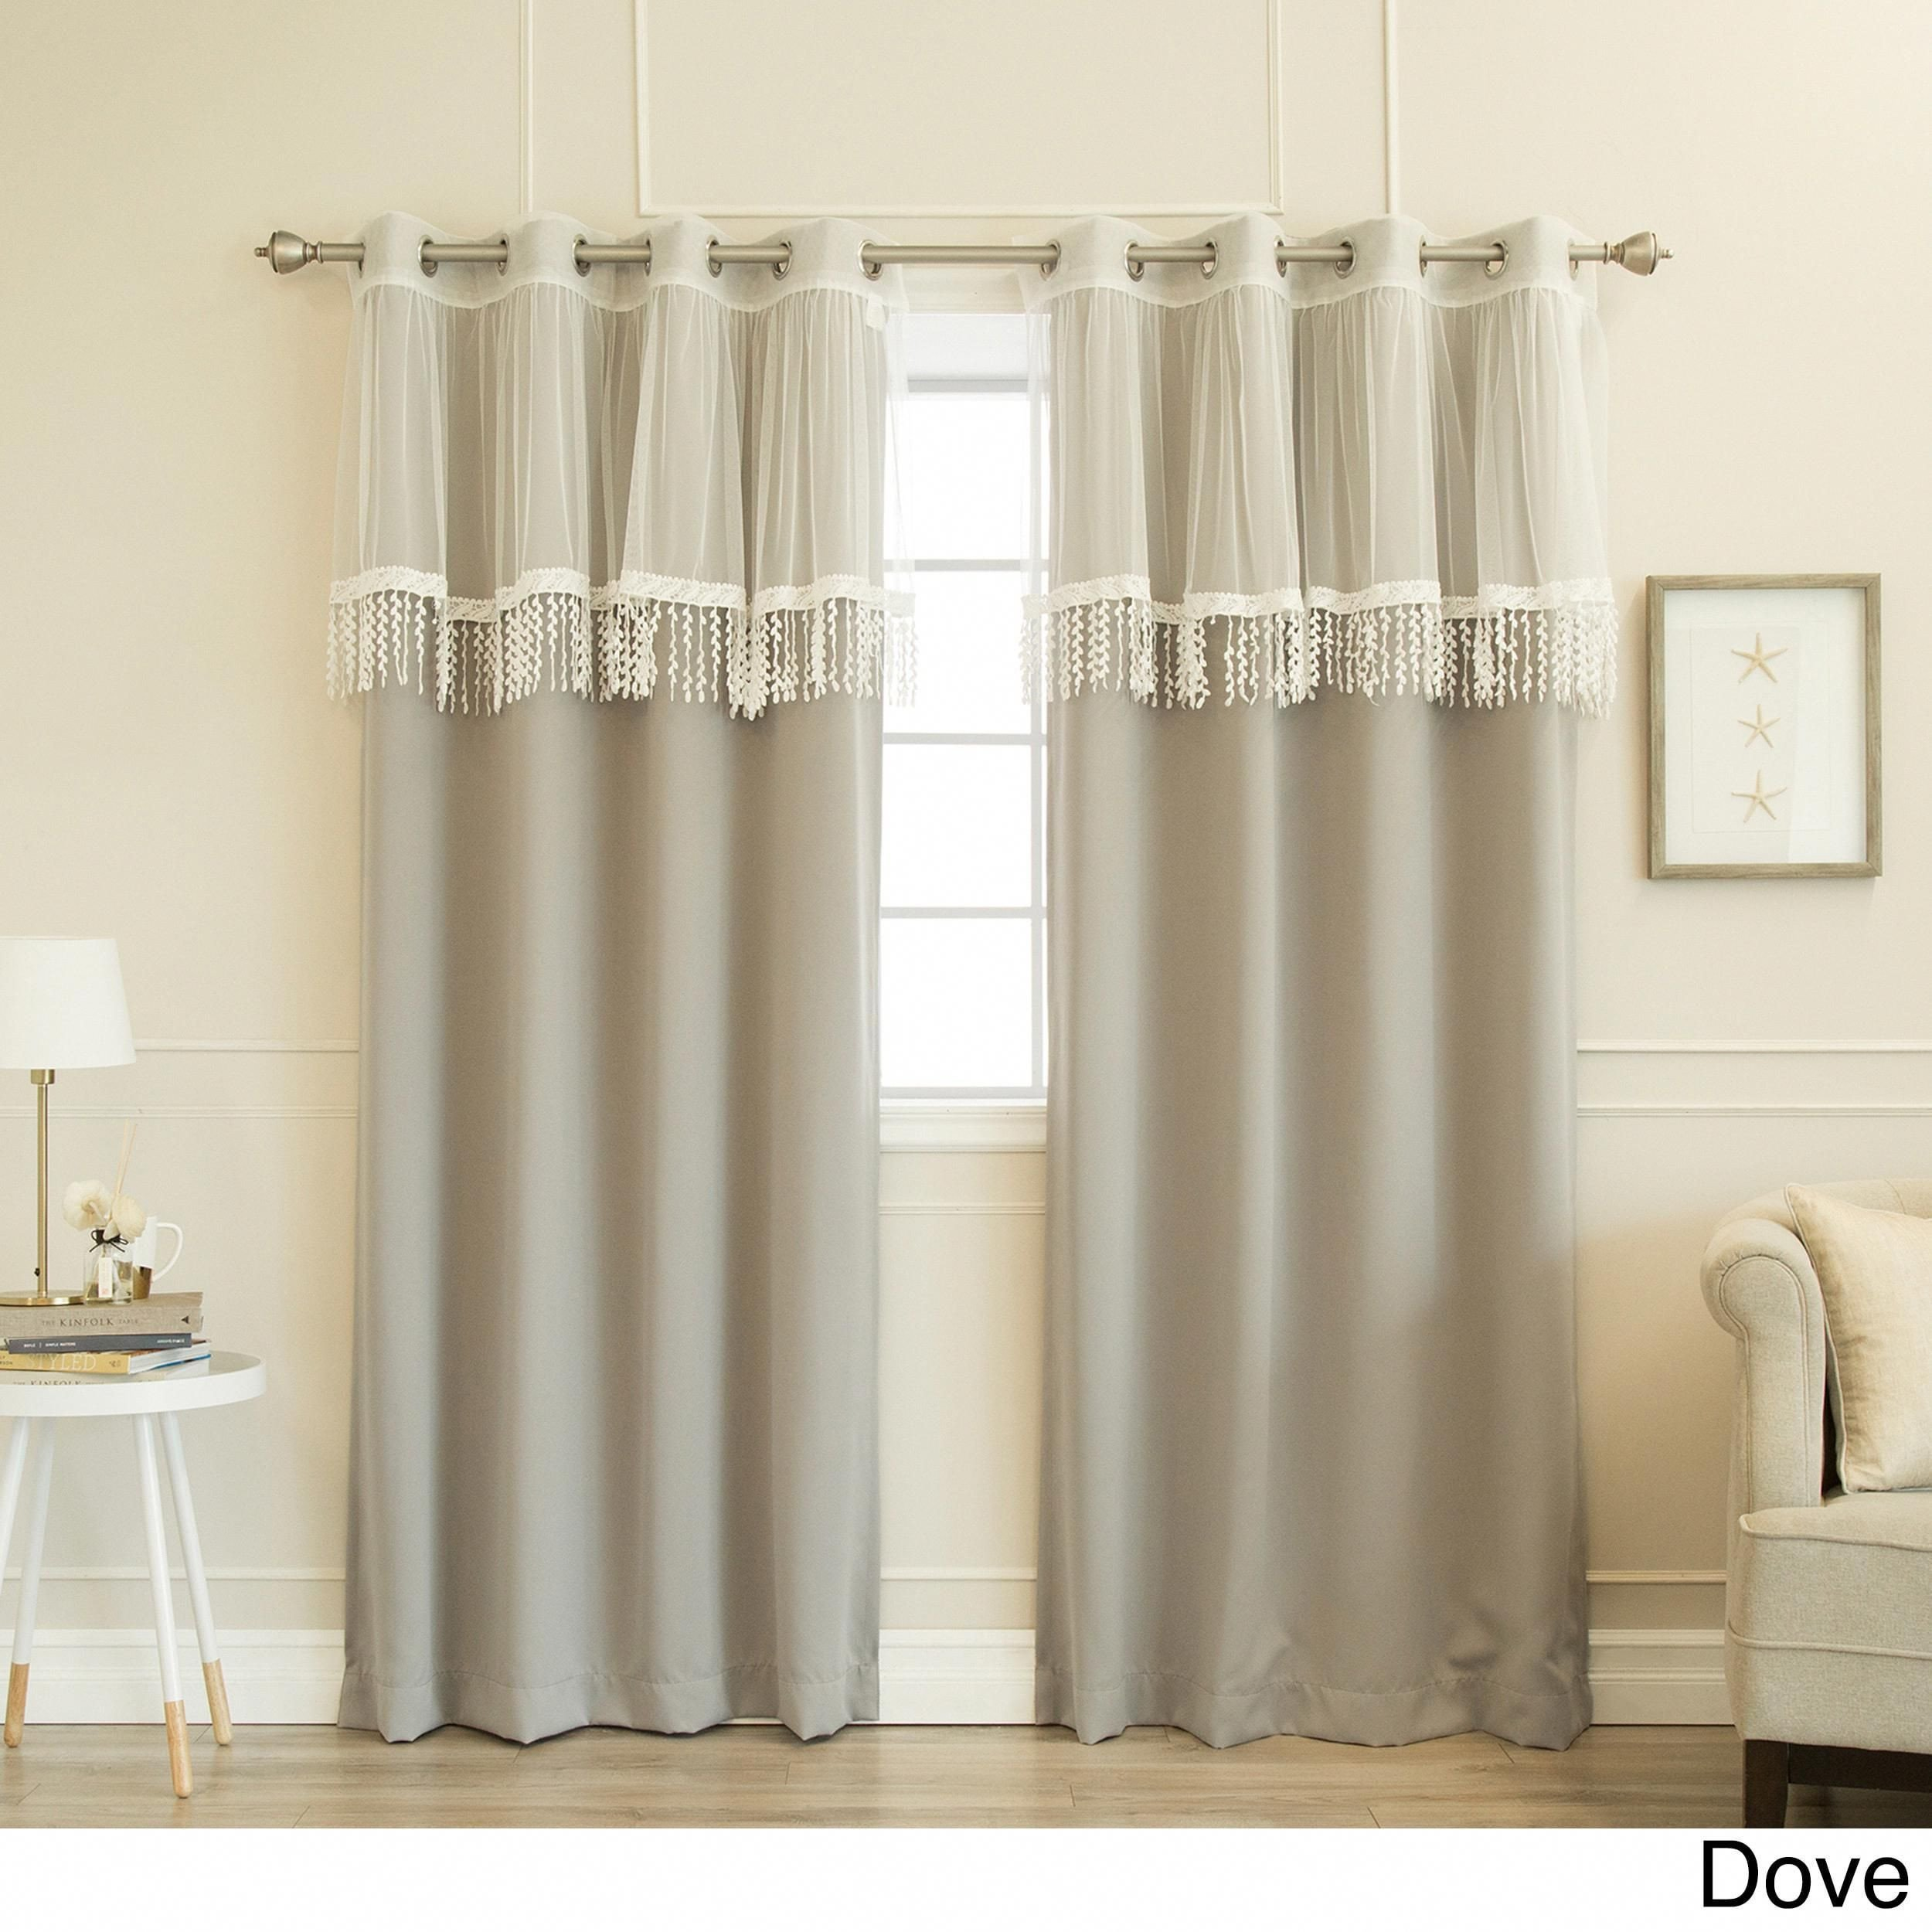 Blackout Drapes for Bedroom Beautiful Aurora Home Leaf Fringe Valance and Blackout Mix&match